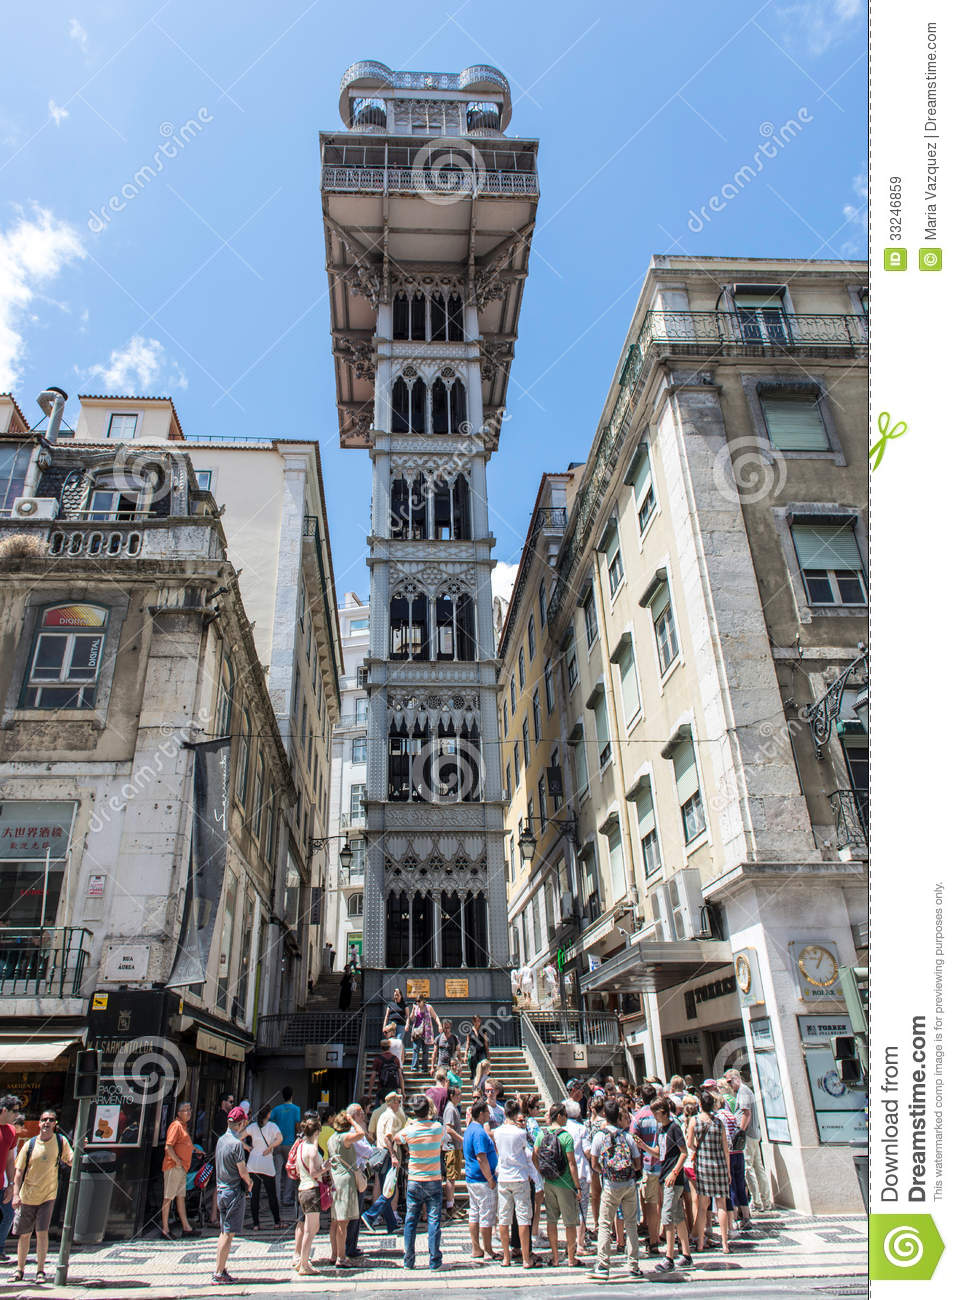 PORTUGAL - JULY 27: Santa Justa elevator in Lisbon, Portugal on July ...